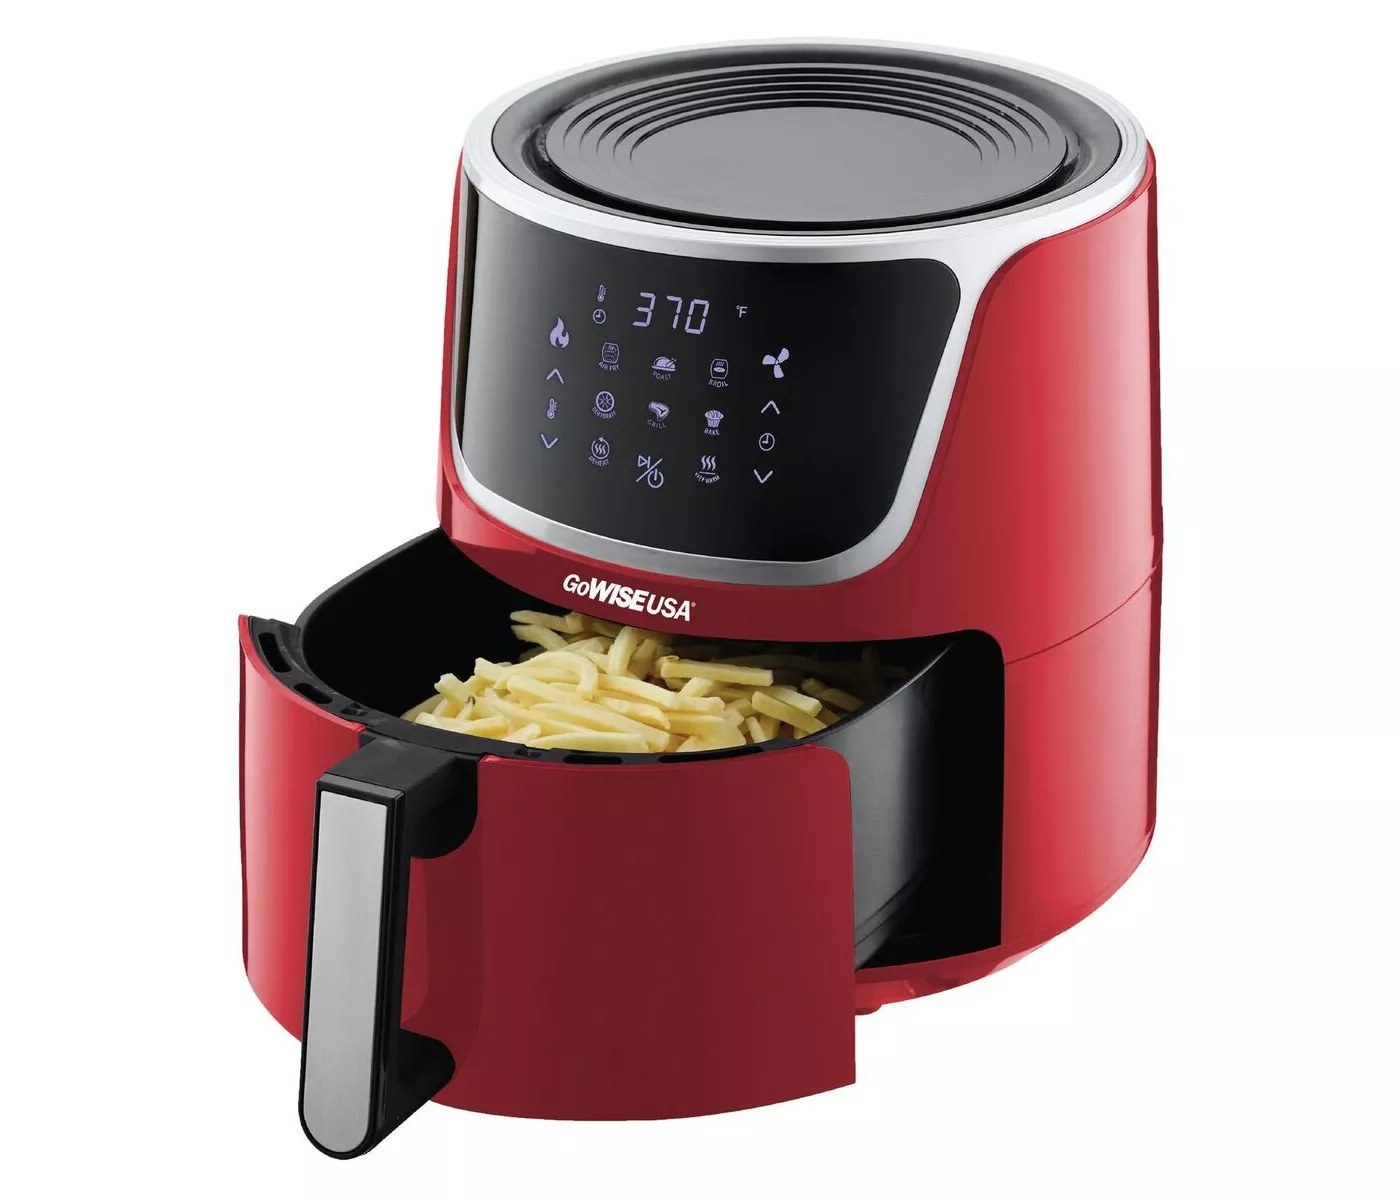 The red GoWISE USA air fryer